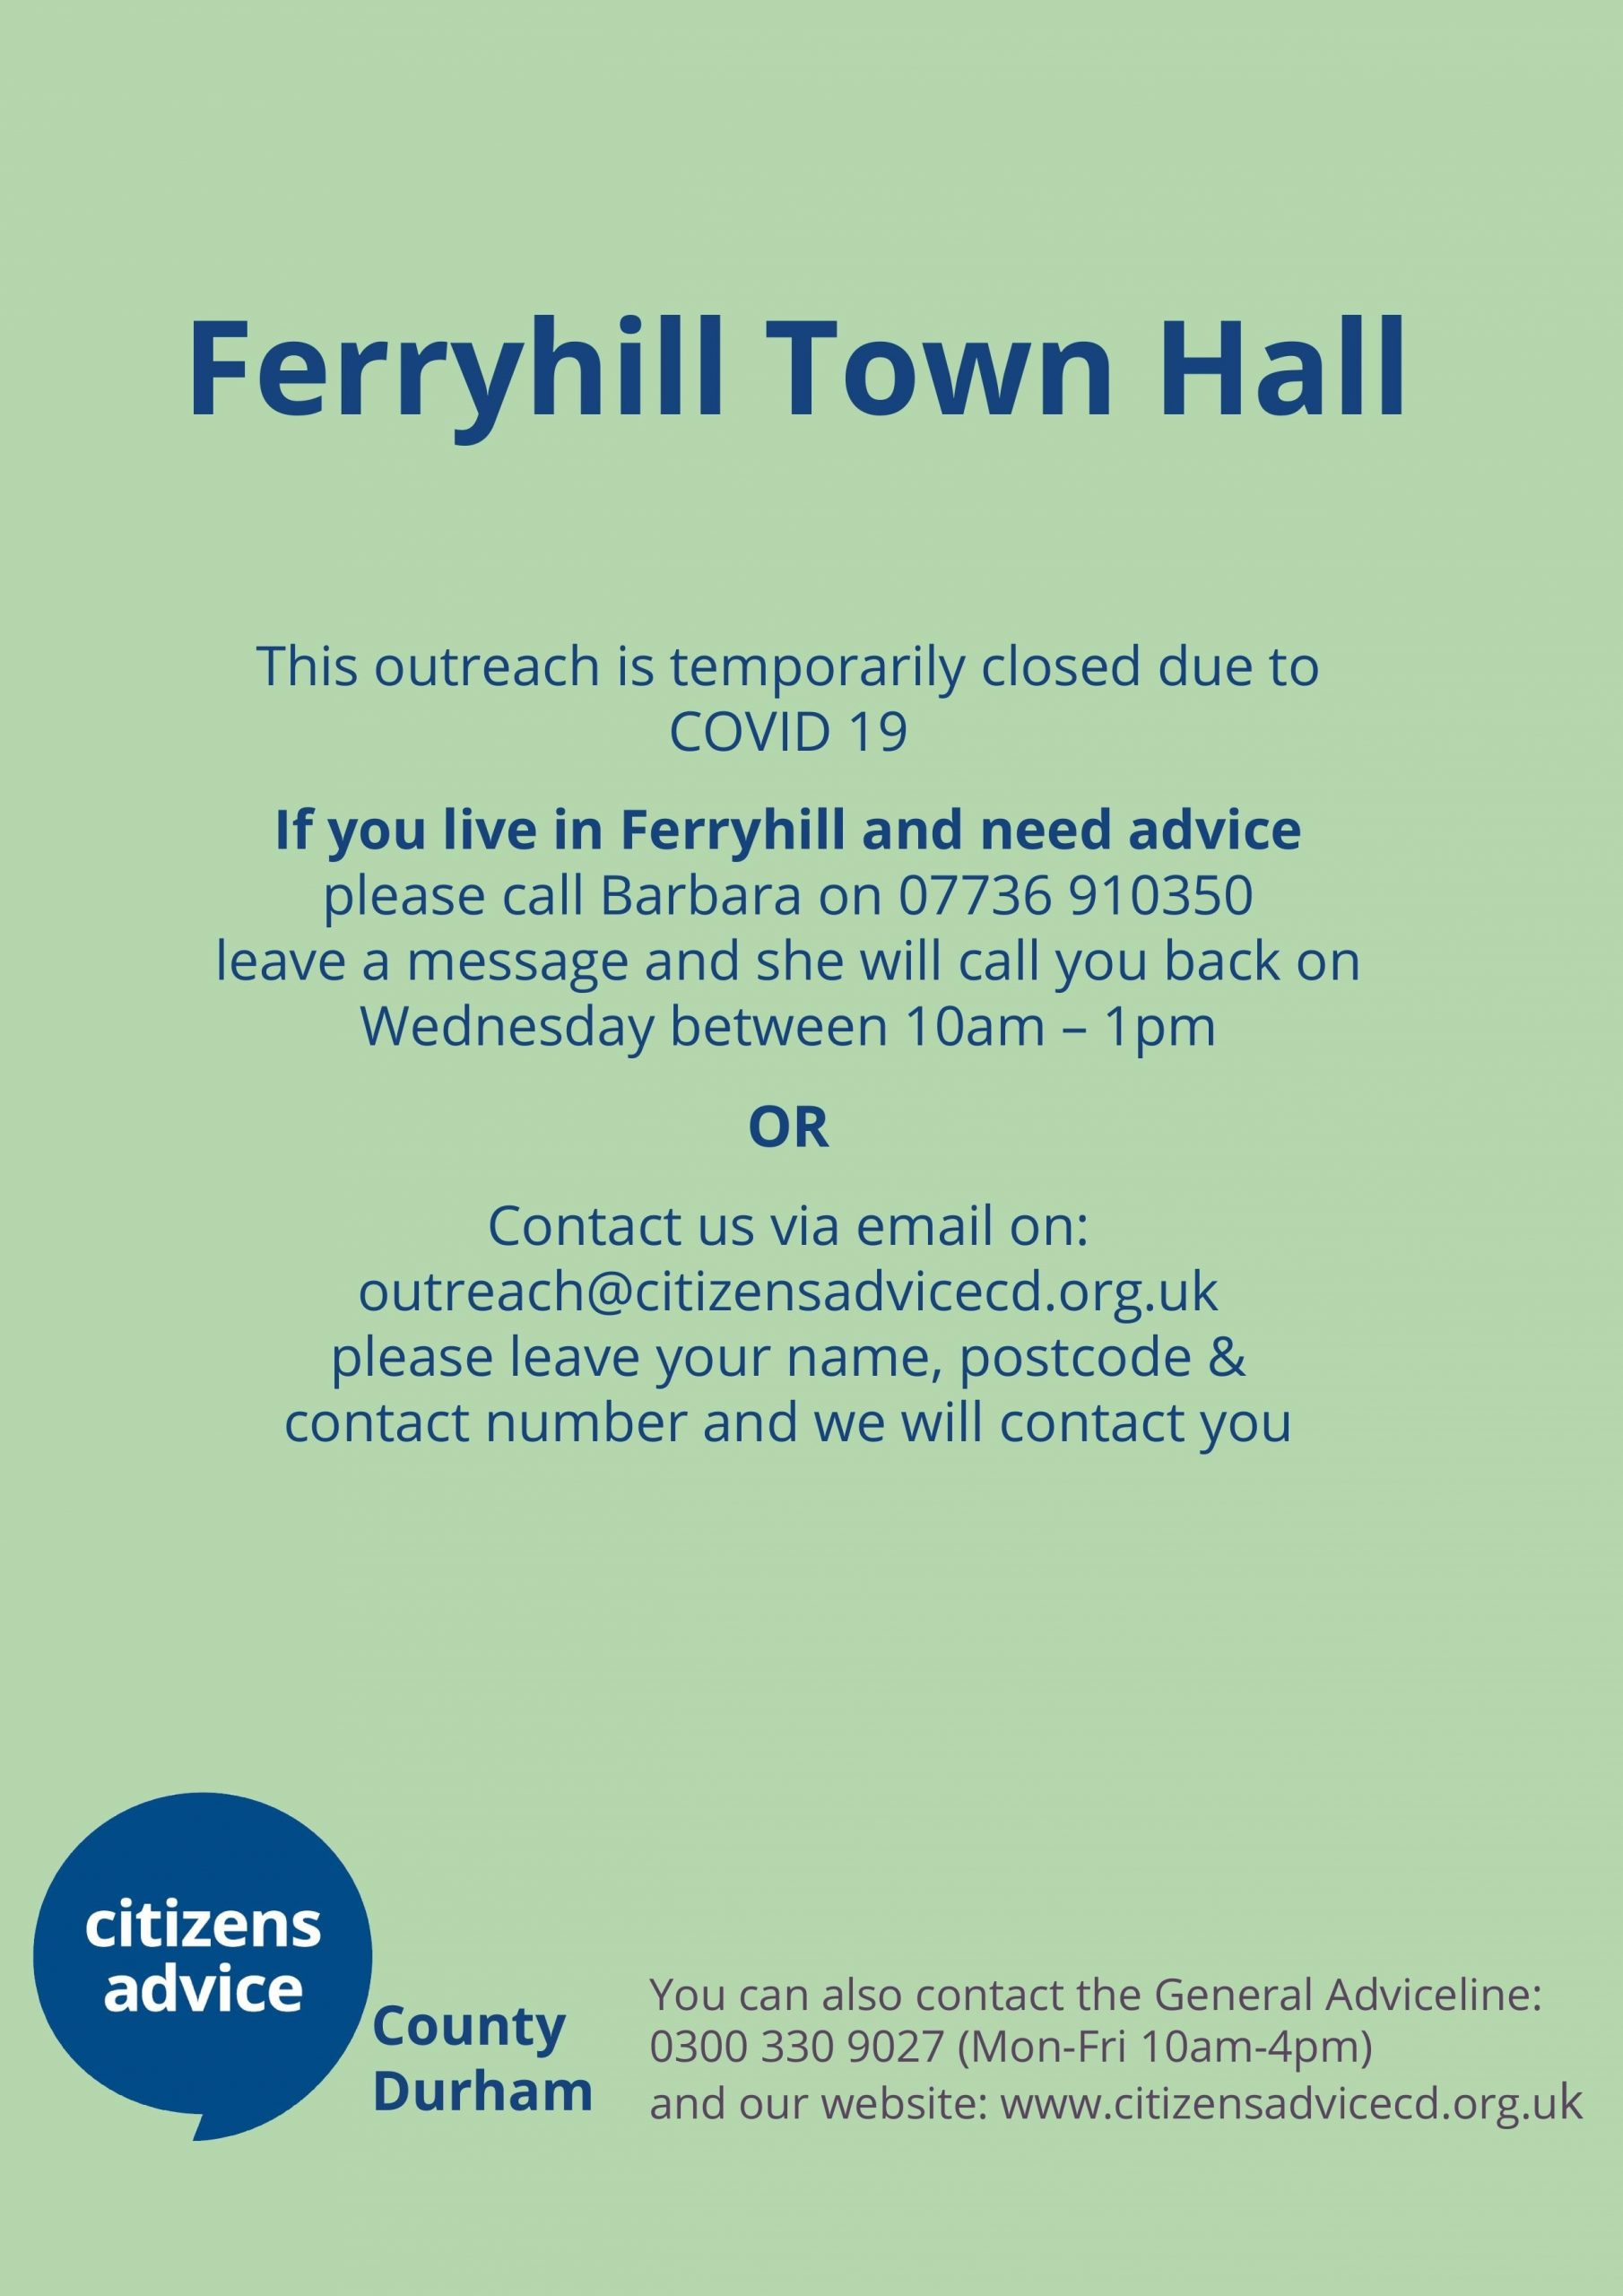 Ferryhill Outreach- Outreach closed but please call